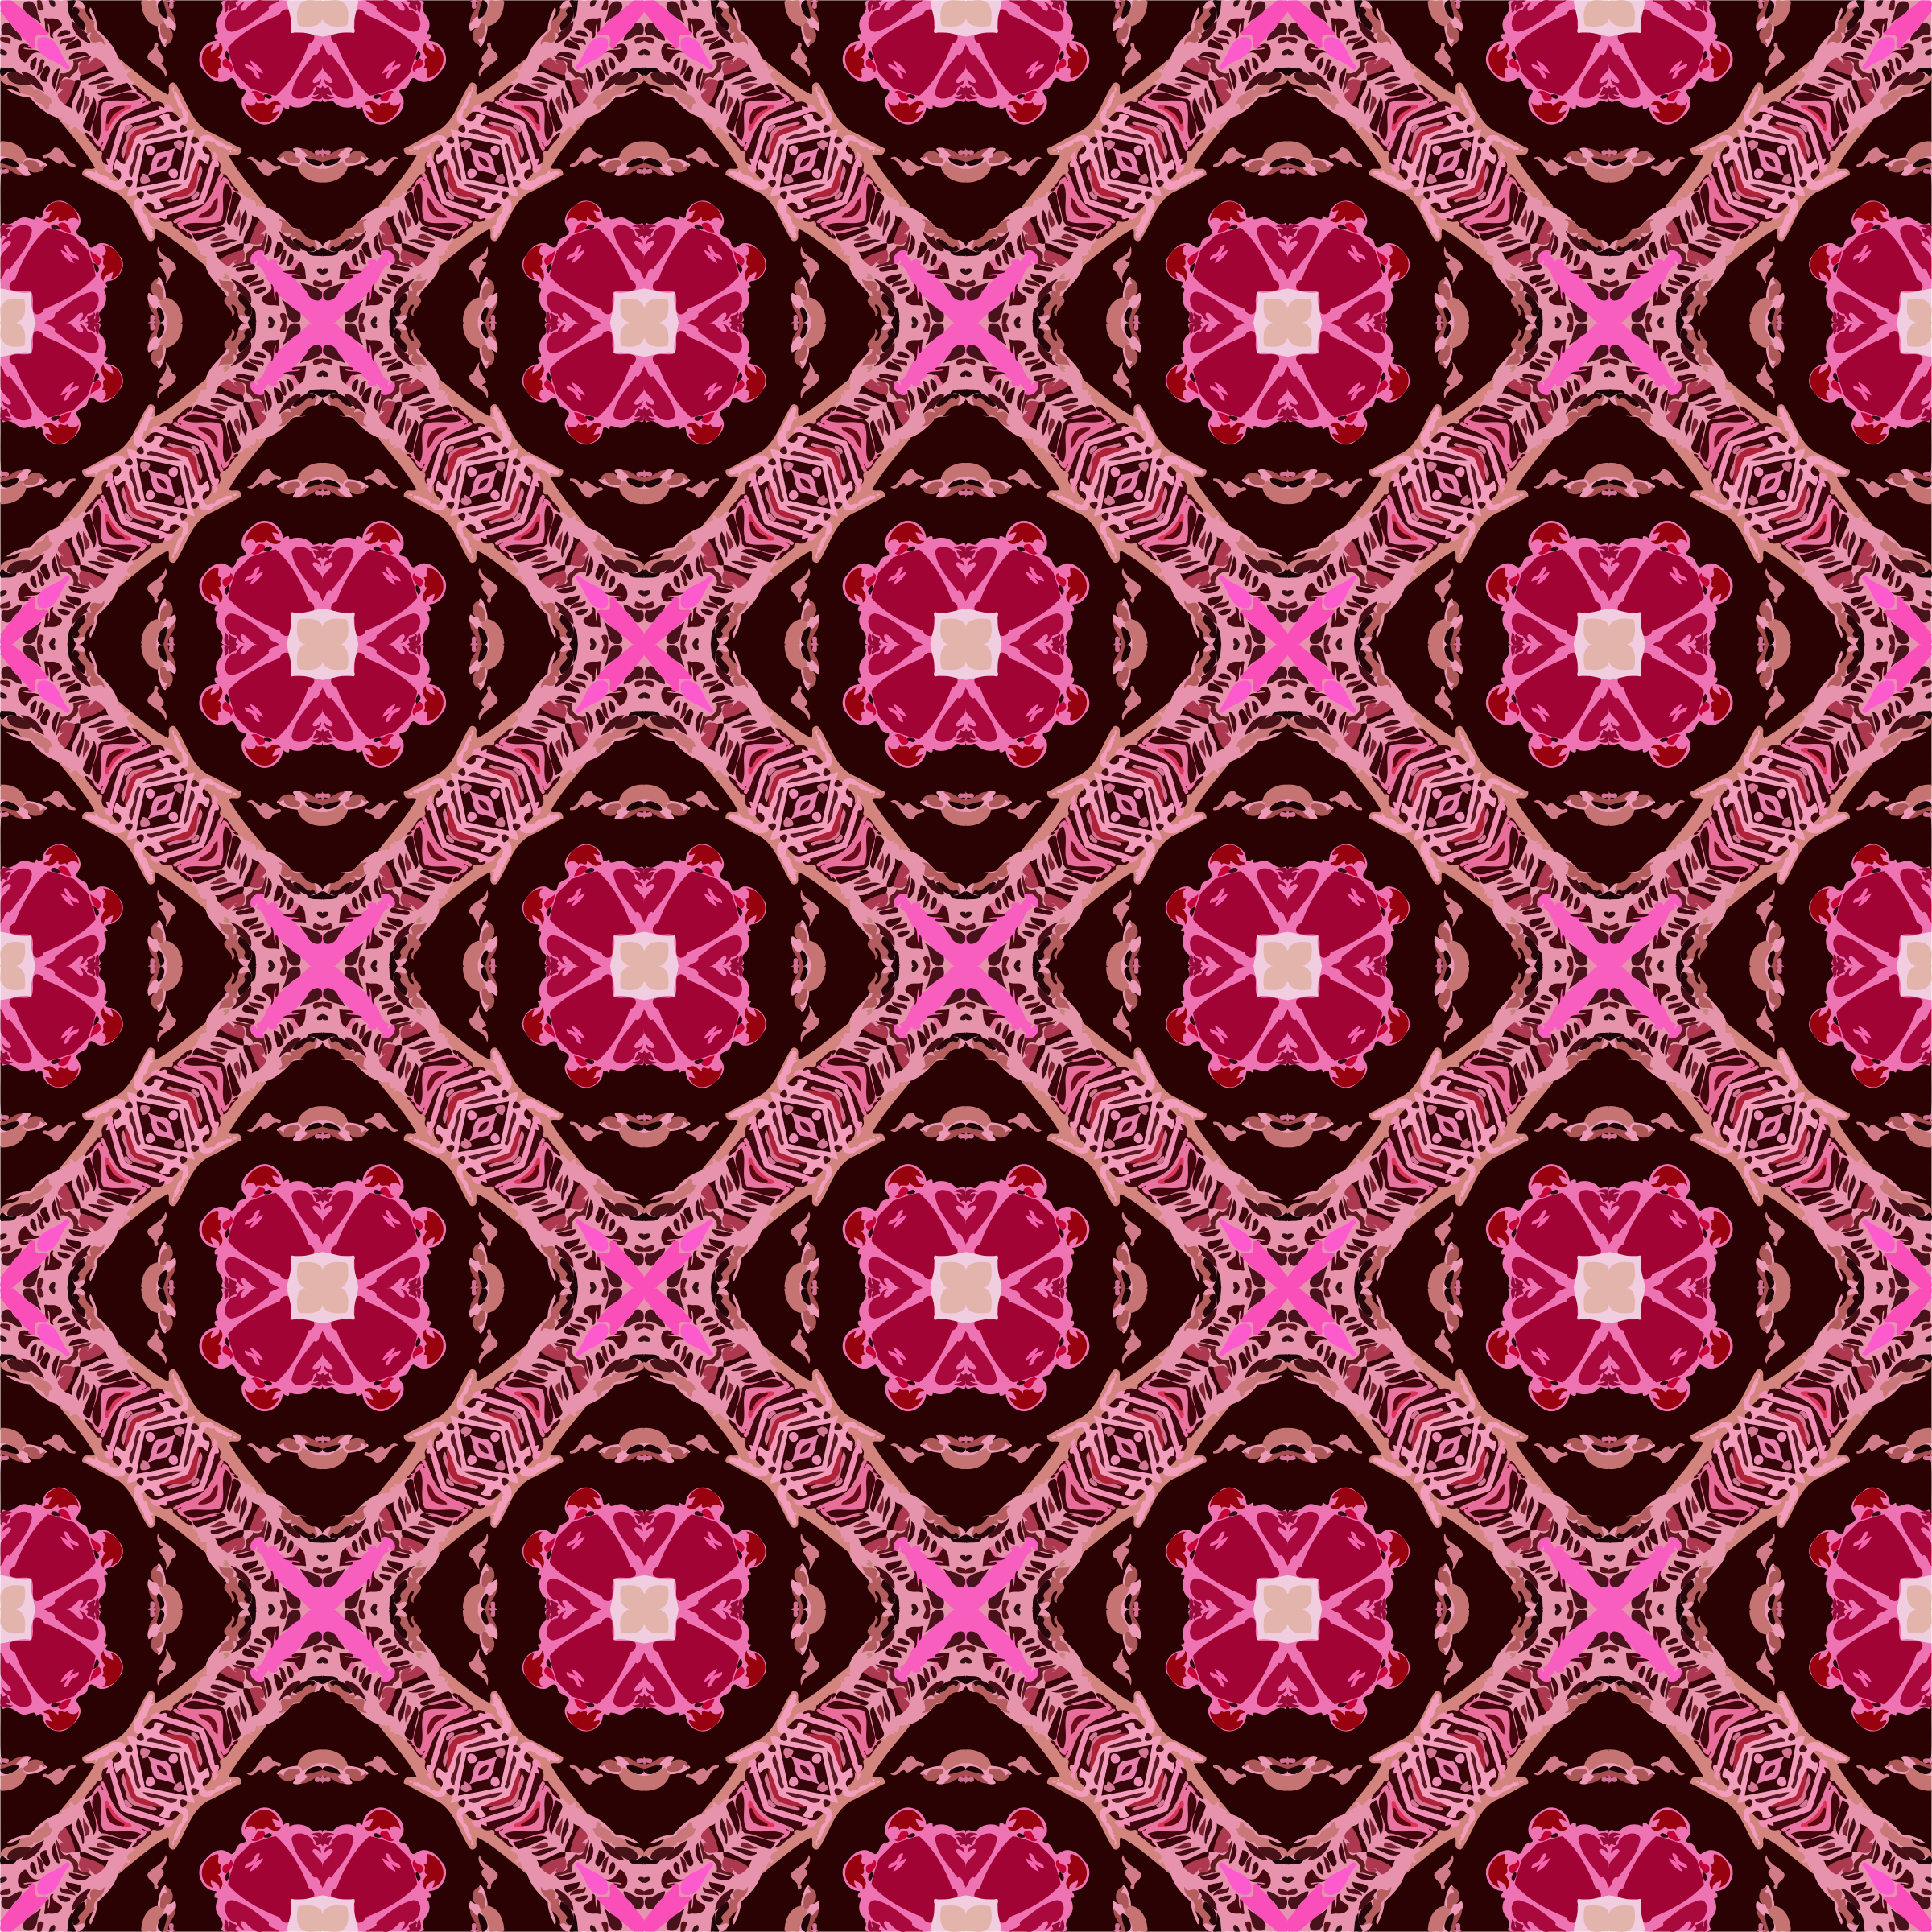 Background pattern 152 (colour 3) by Firkin